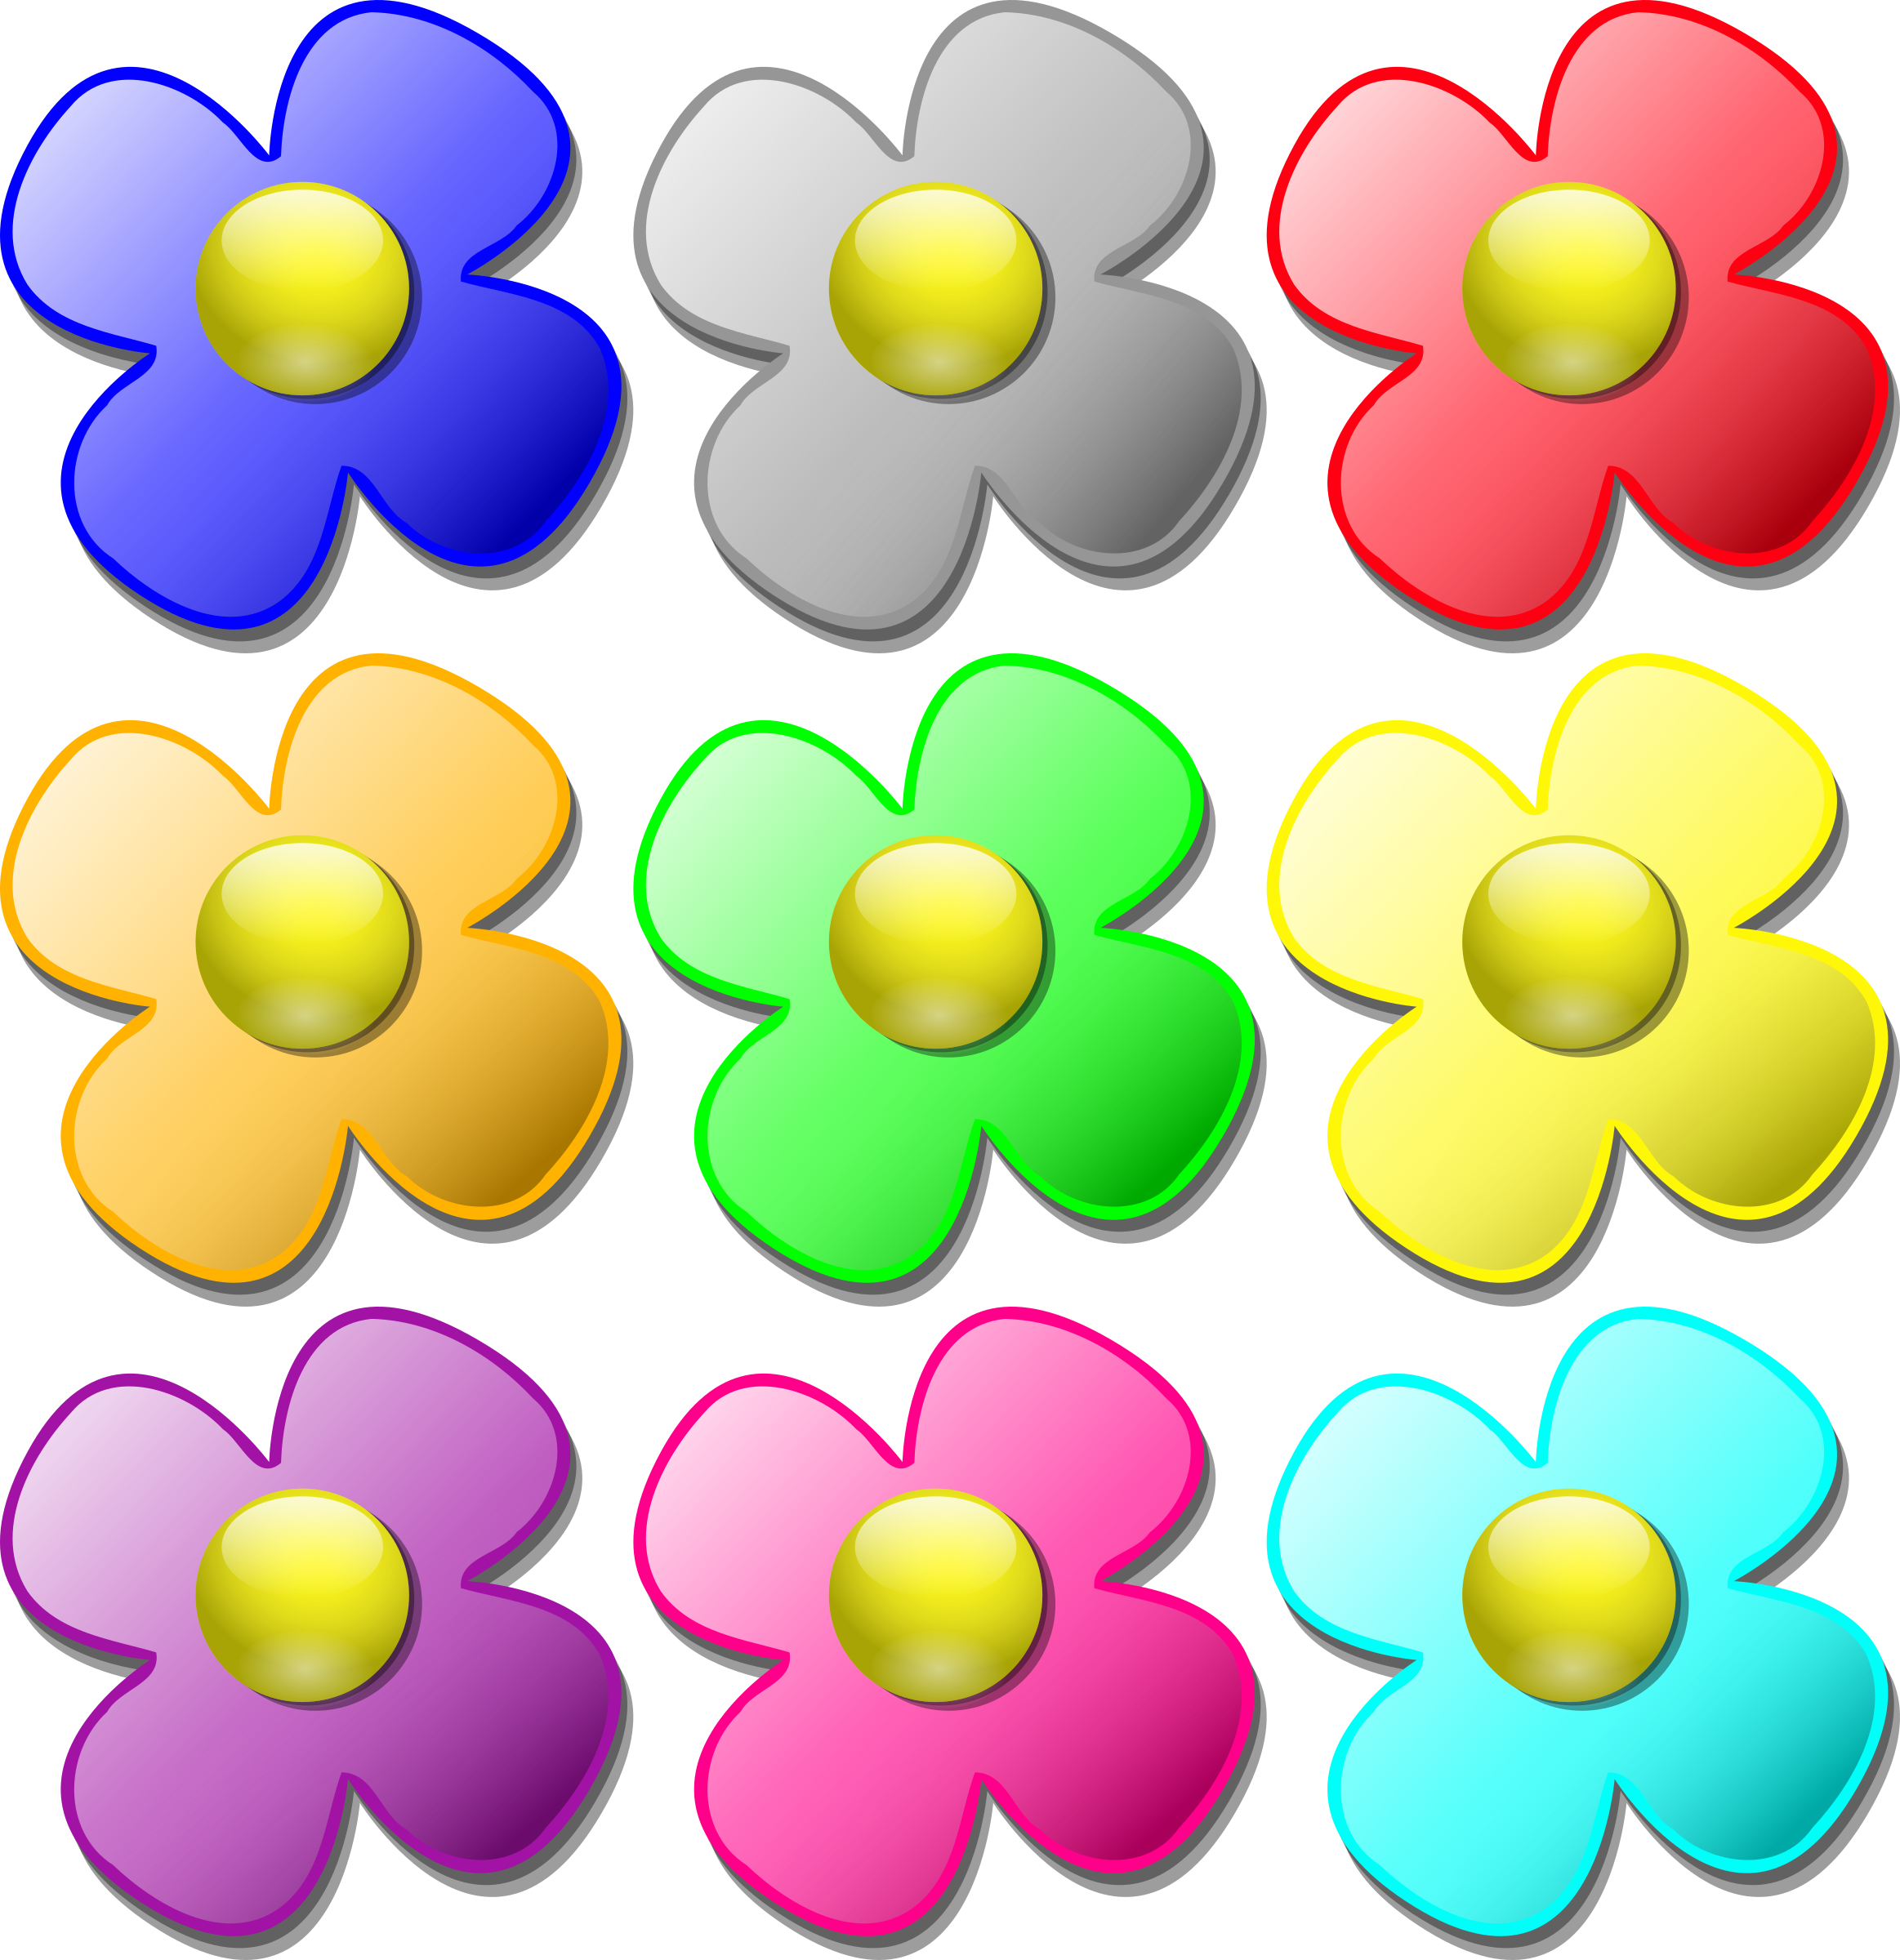 Game marbles - flowers by nicubunu